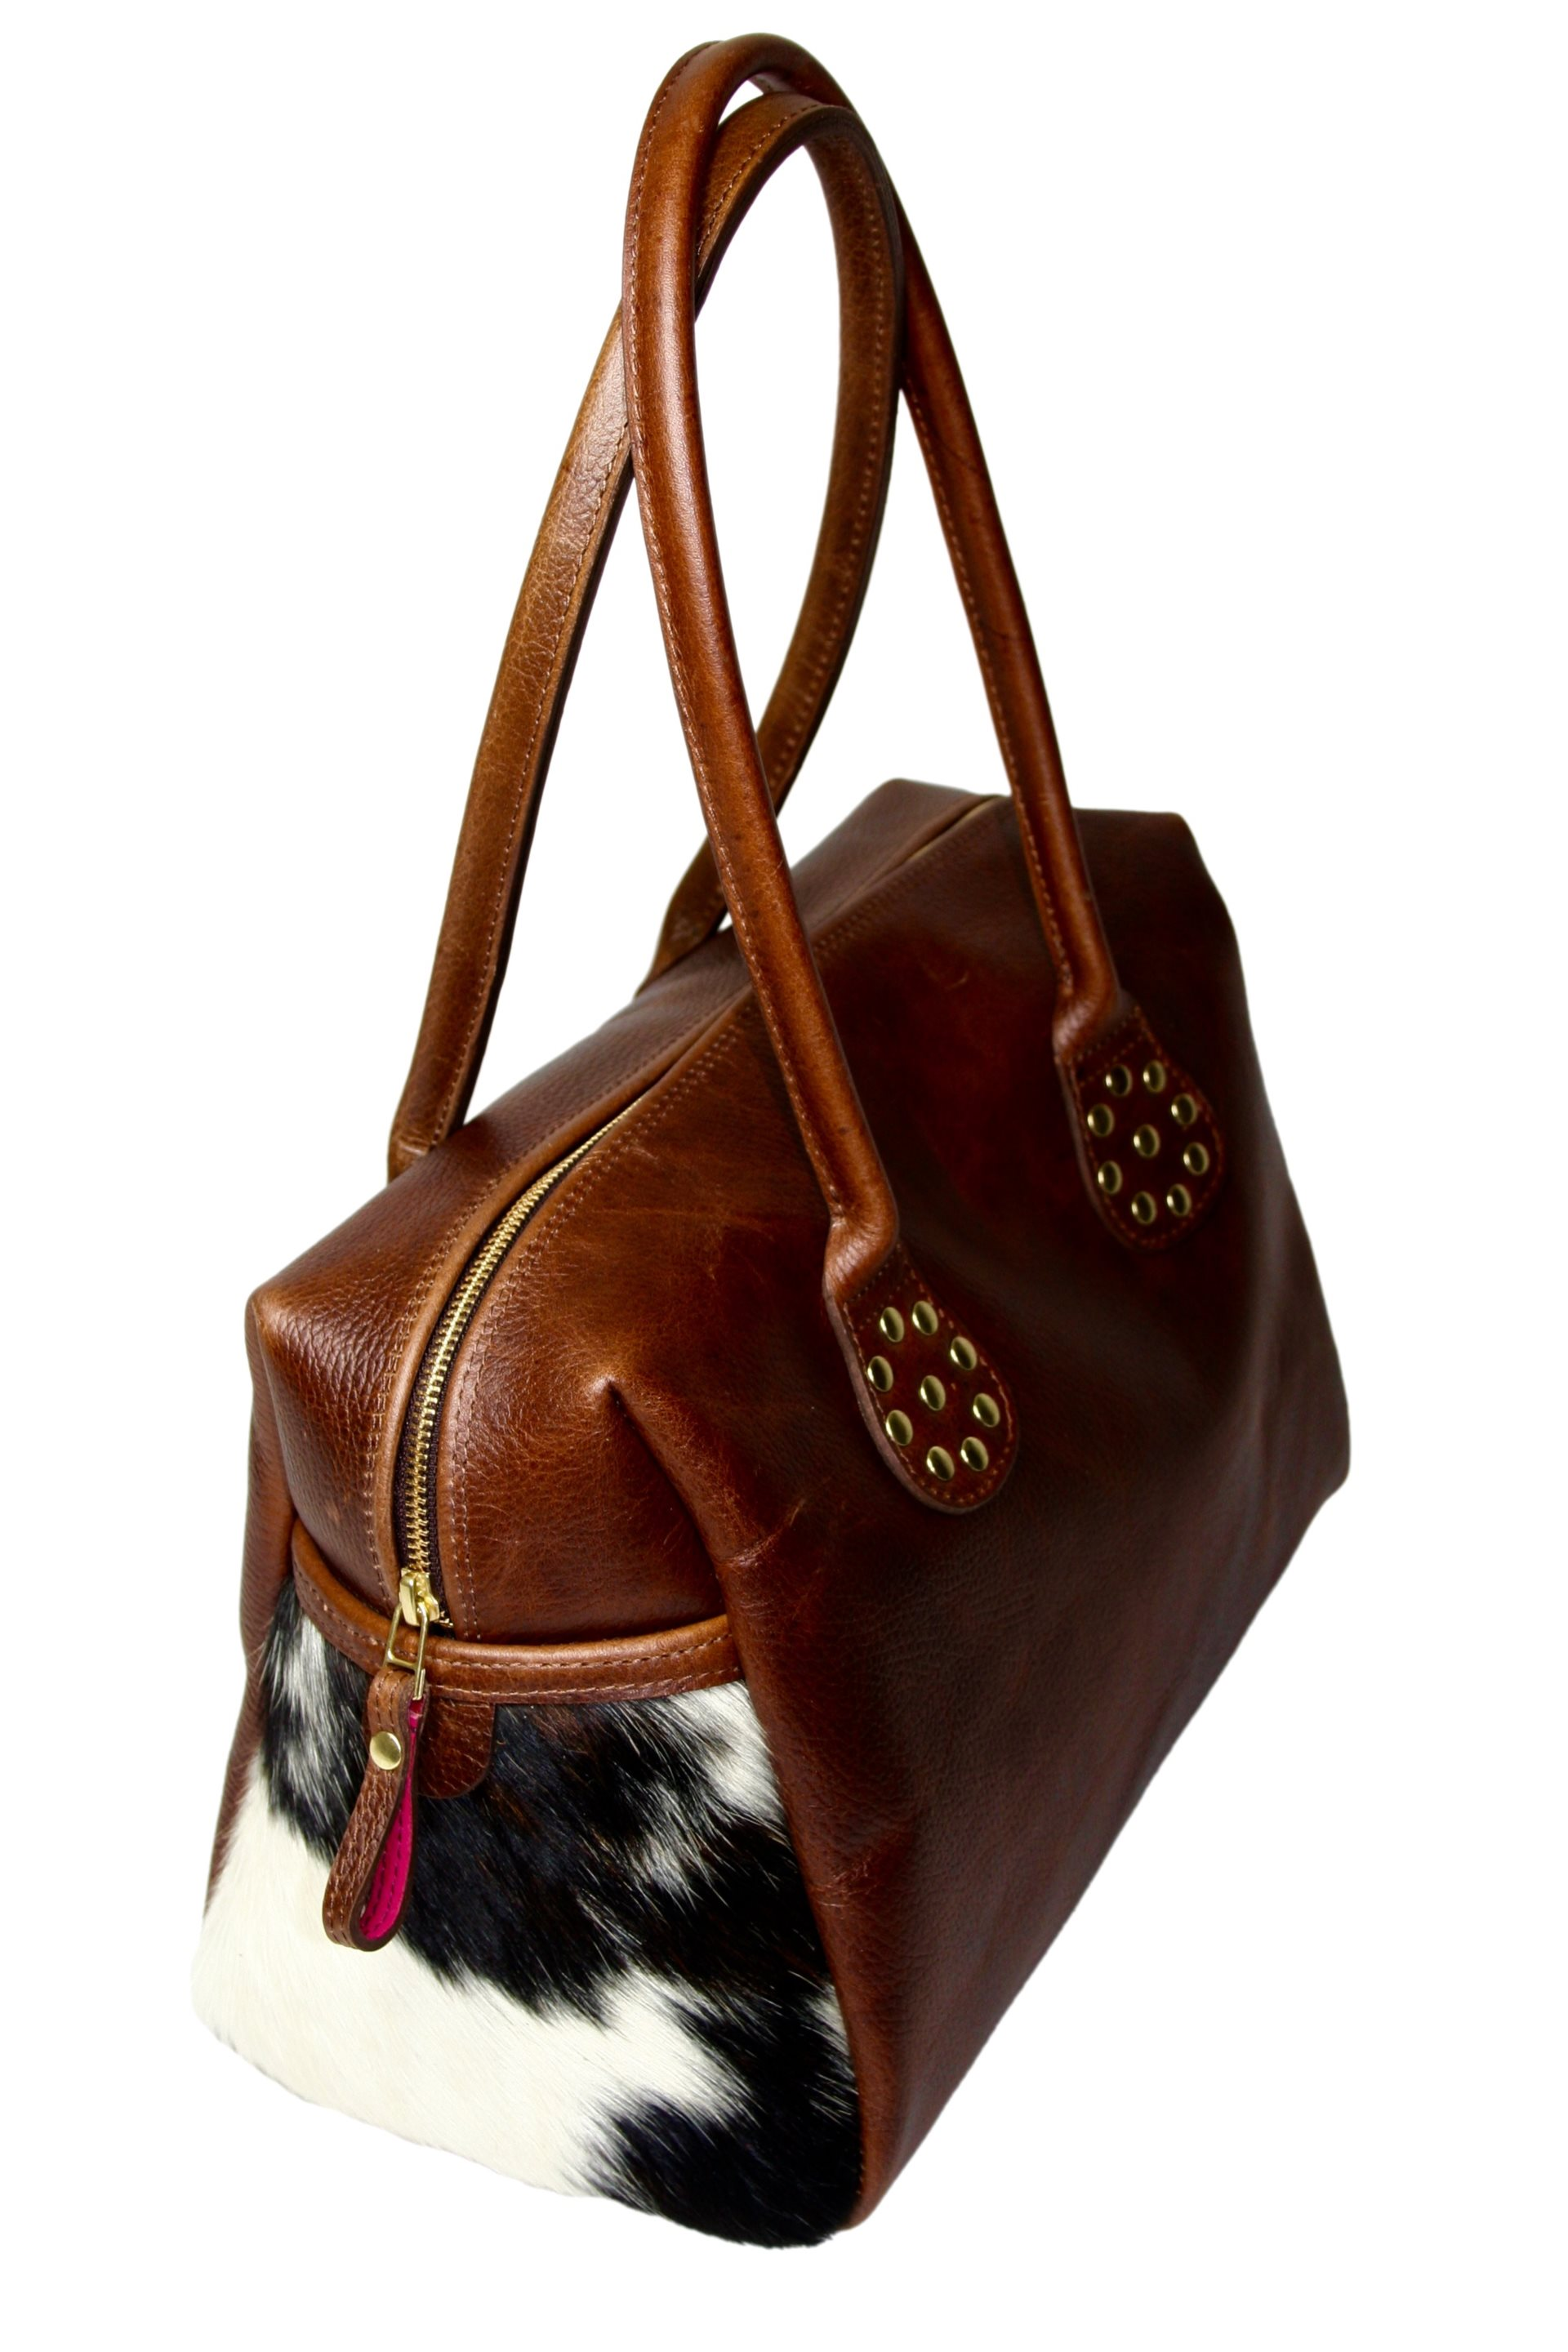 Obley Bag